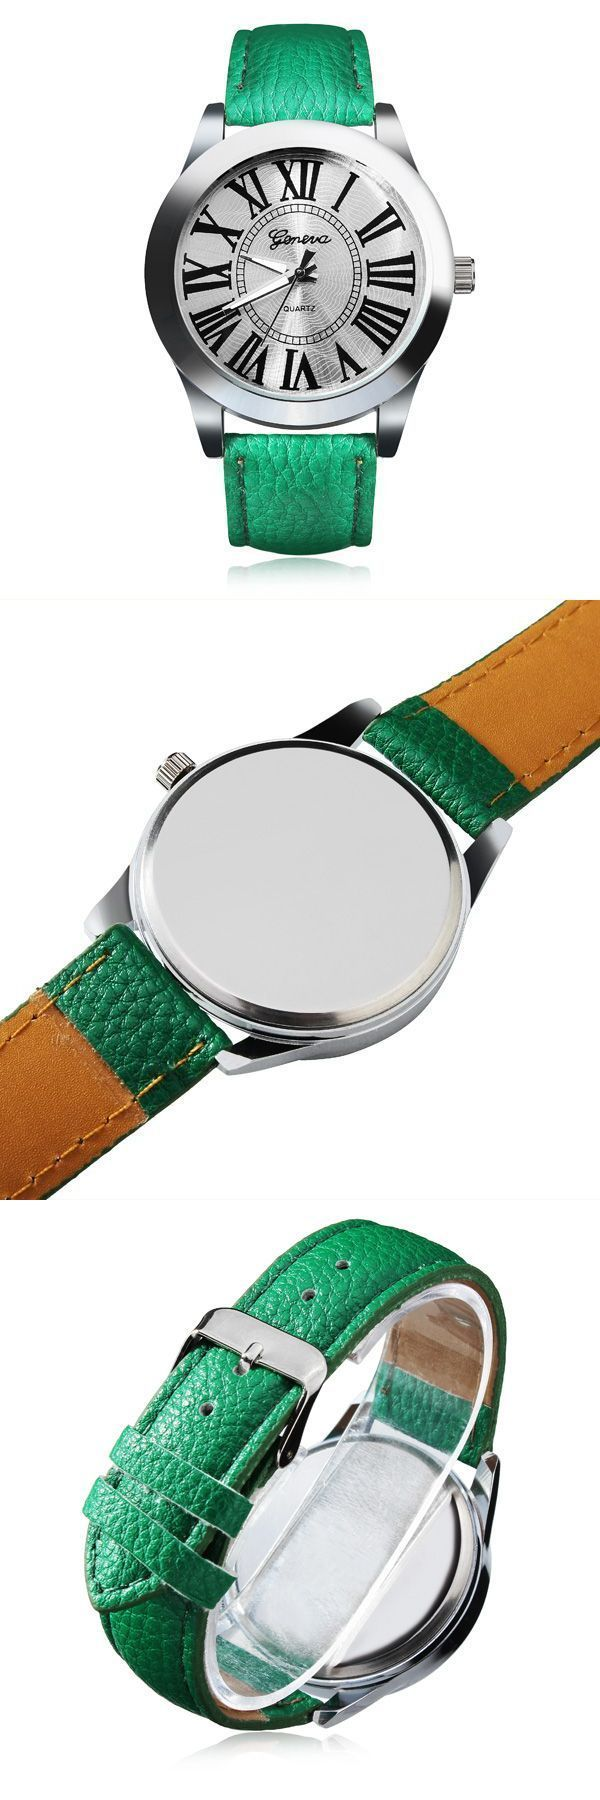 Pu leather roman number silver round women wrist watch cute style status in hindi #cute #2 #color #hairstyles #cute #style #ideas #for #leggings #cute #vintage #style #how #to #make #a #cute #hairstyle